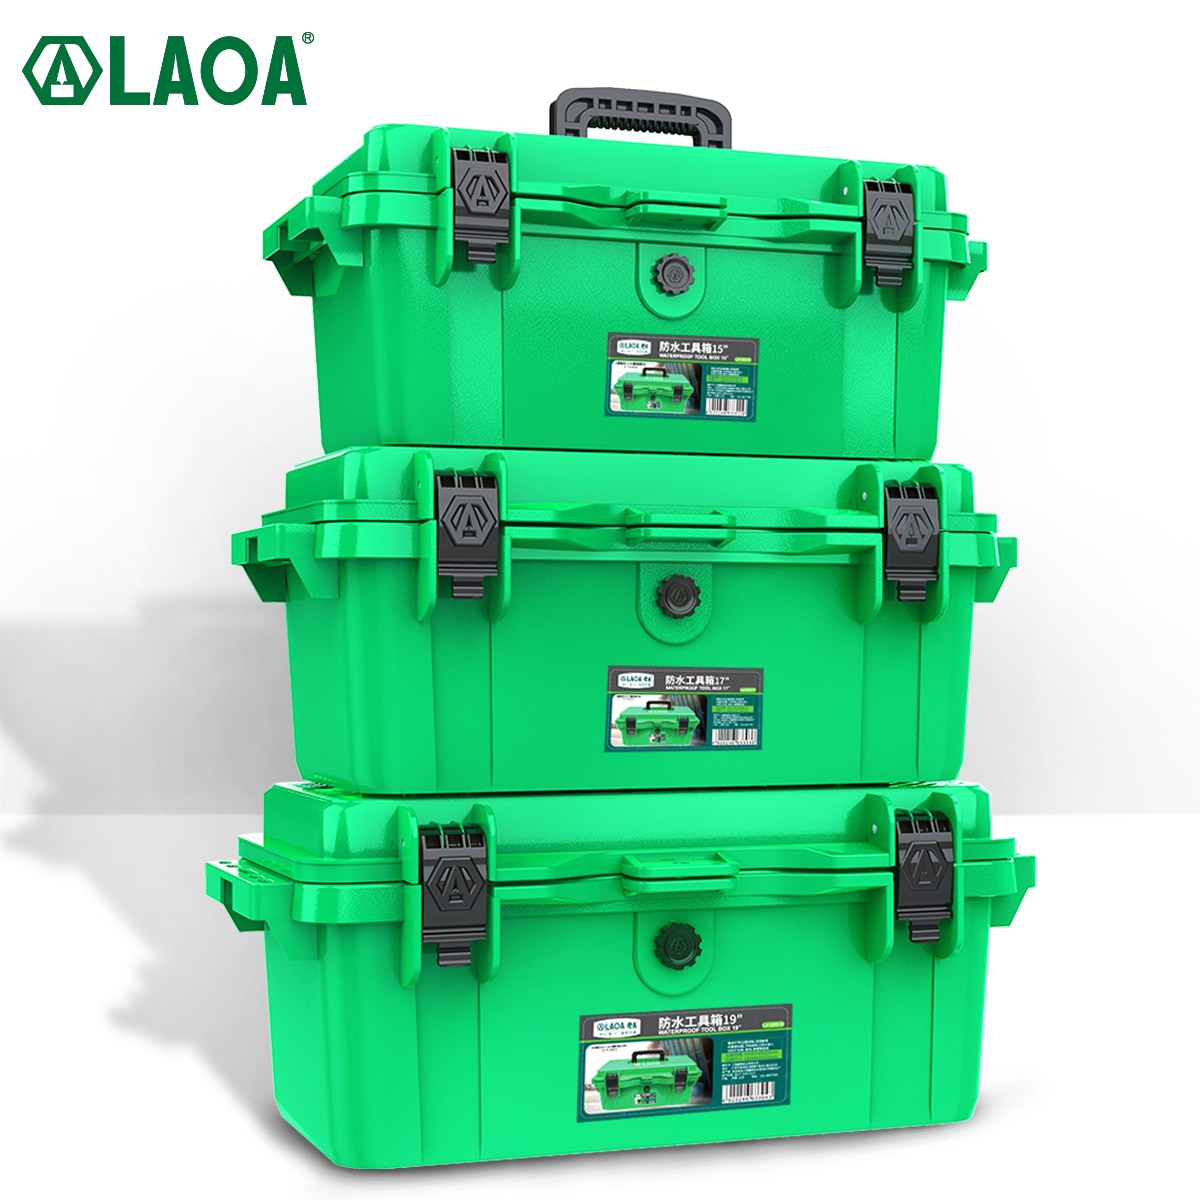 LAOA Thickened Waterproof Toolbox Storage Box Set Vehicle Maintenance Electrician Household Portable Industrial Grade Toolsbox